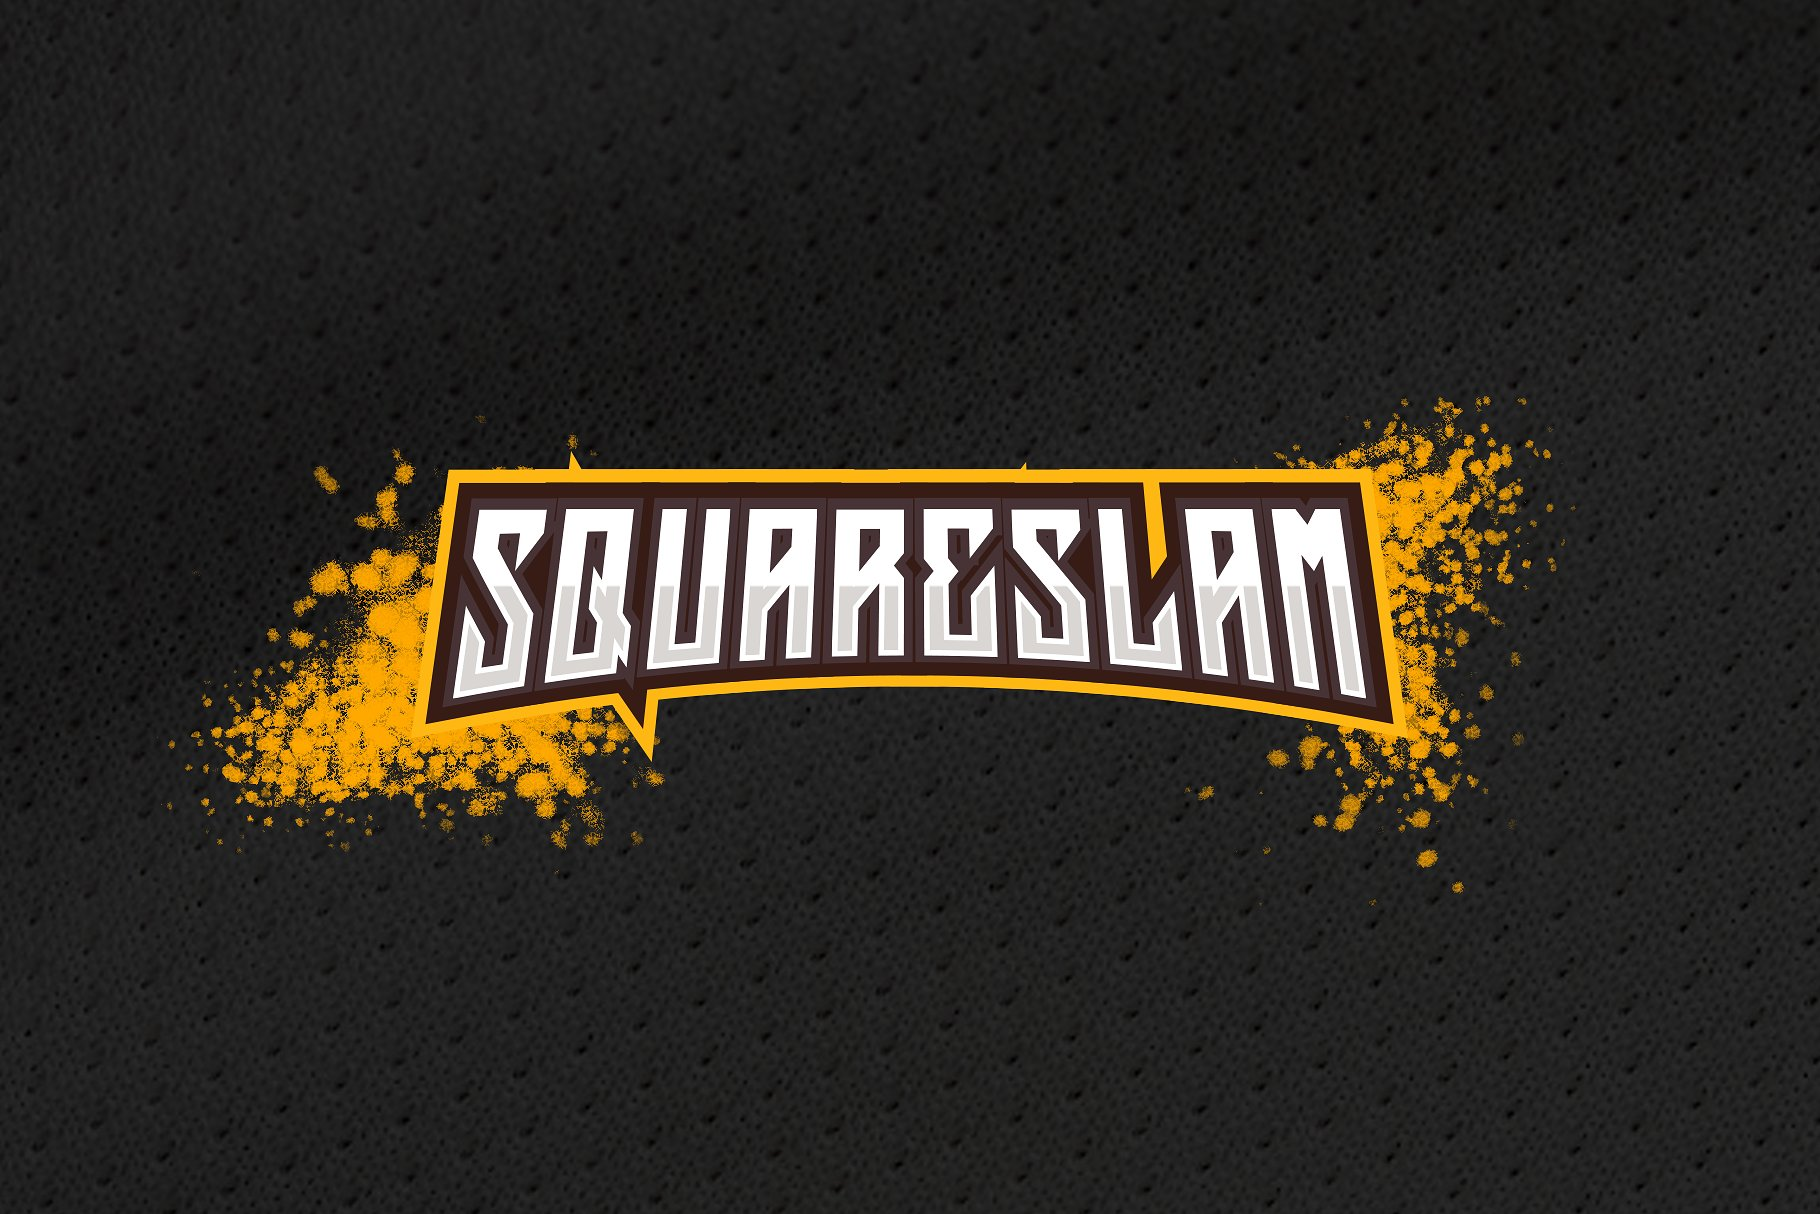 Squareslam sports and esports font example image 5